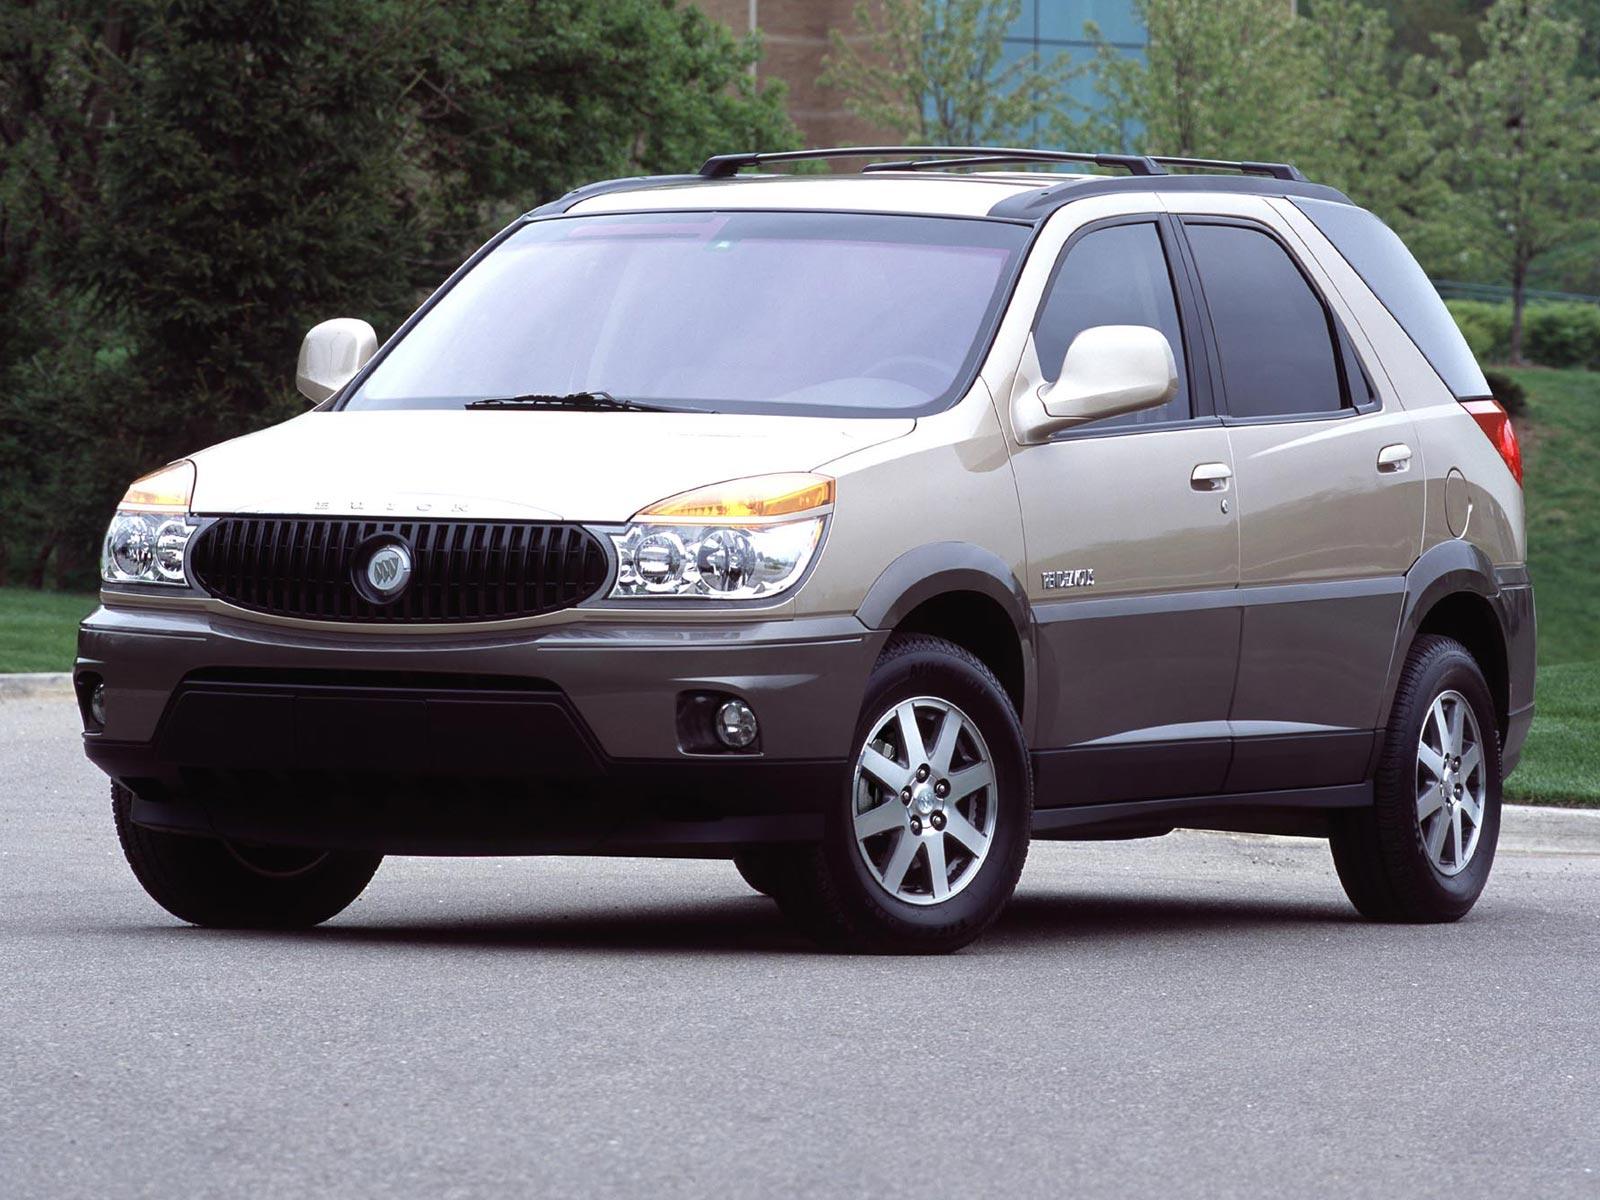 2003 buick rendezvous suv autos post. Black Bedroom Furniture Sets. Home Design Ideas